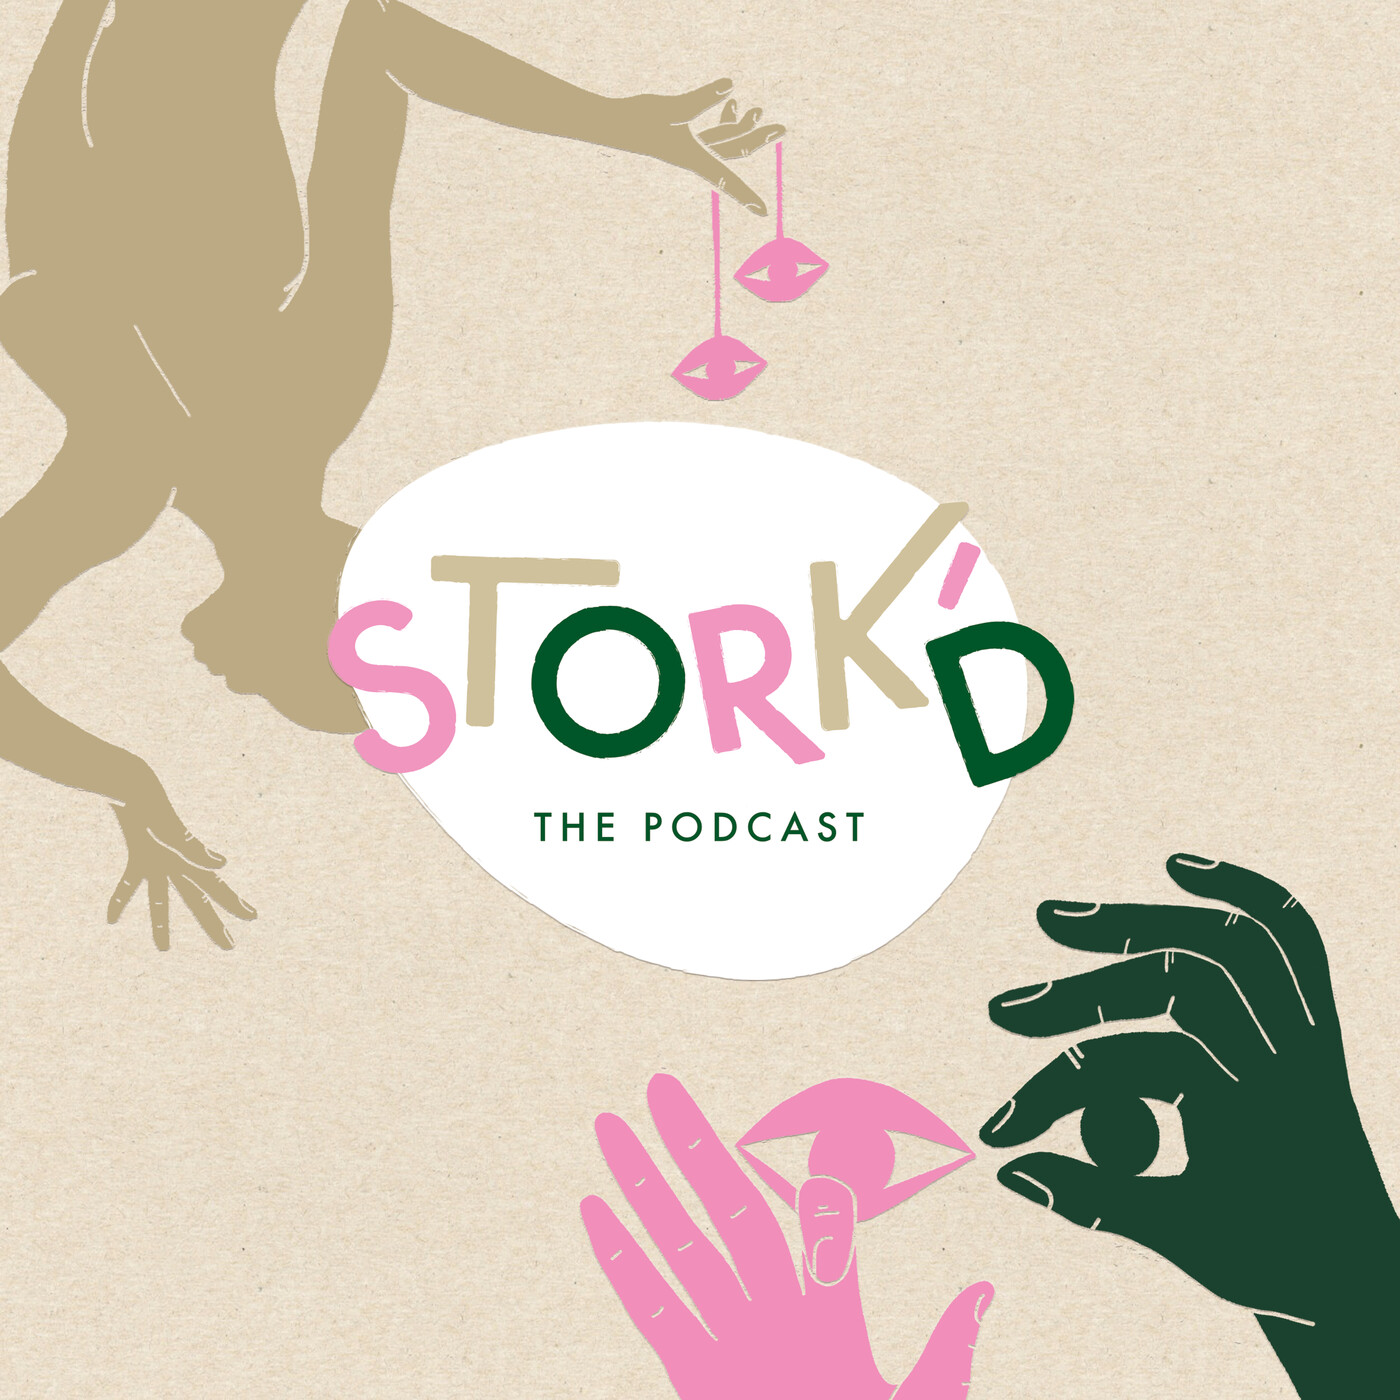 1. Journey to Stork'd, Host Julia Karol shares her journey to build a family and a podcast